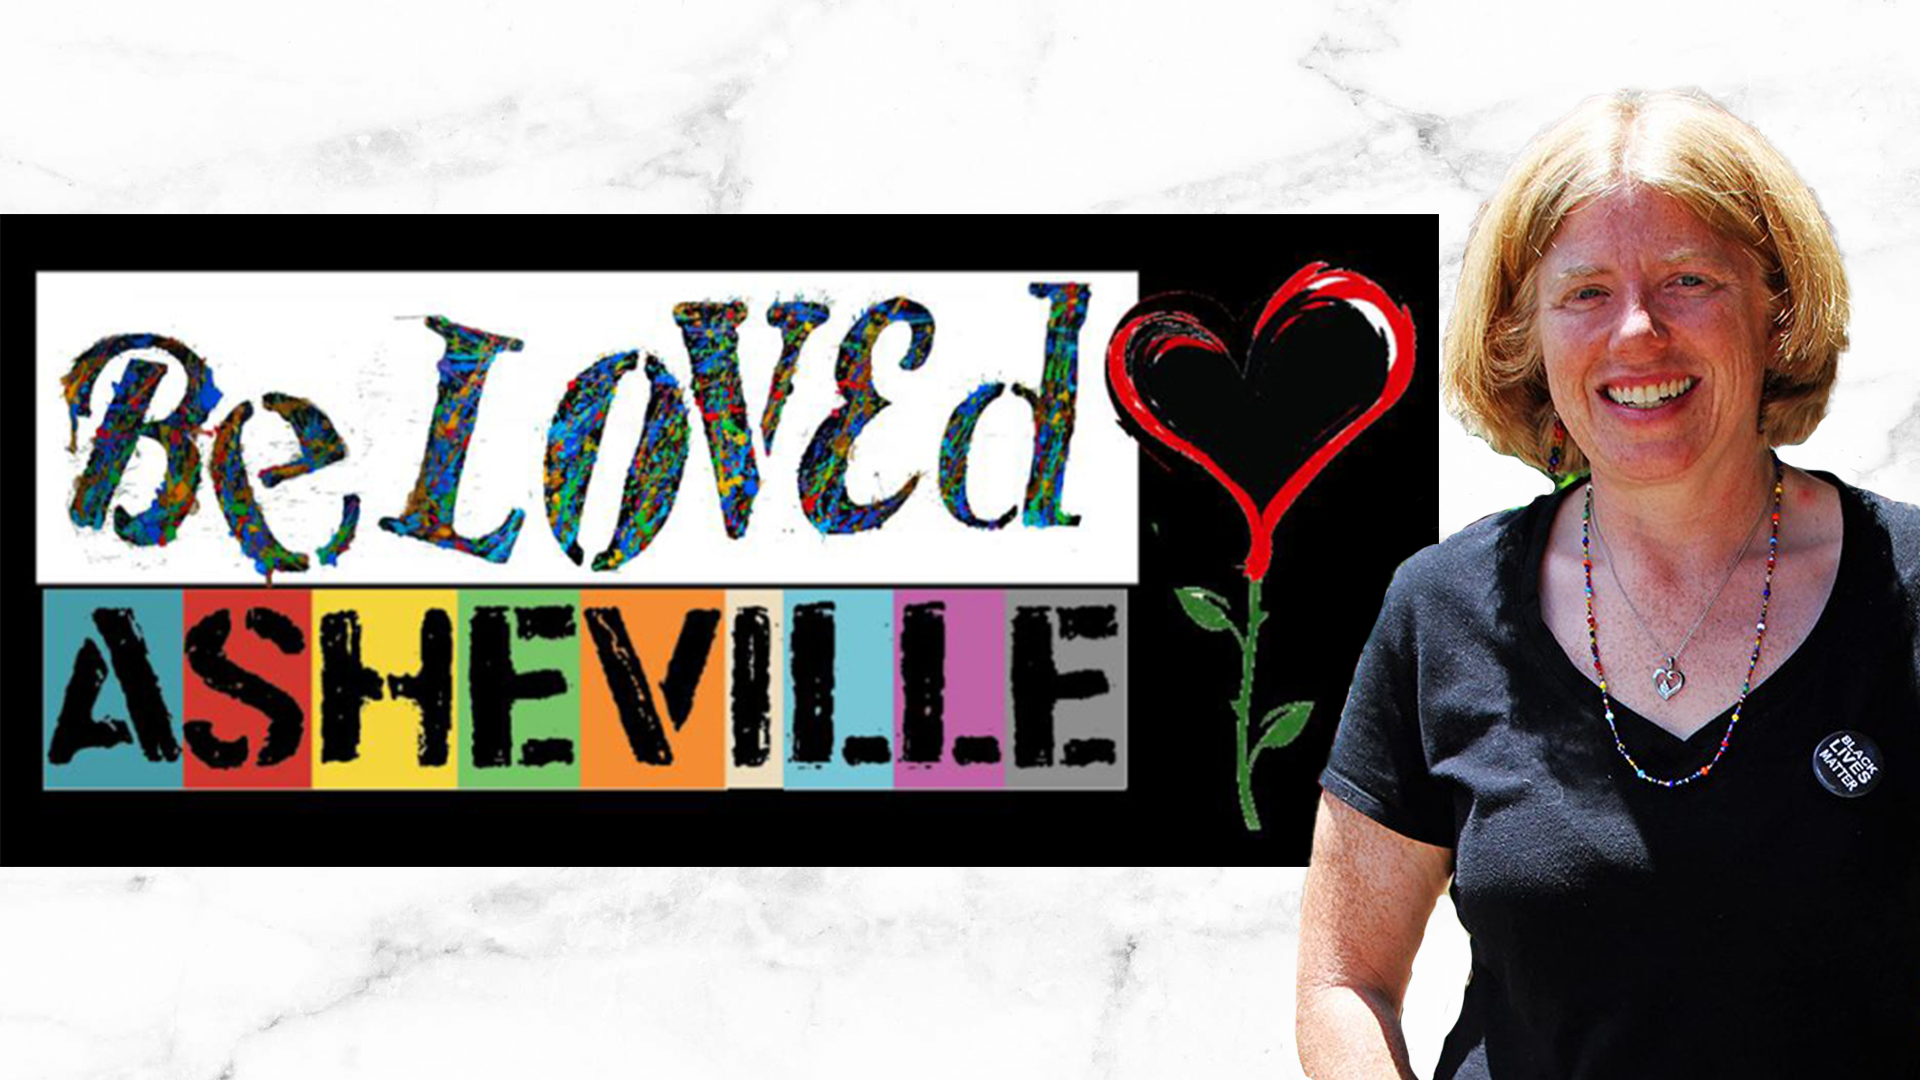 BELOVED ASHEVILLE WITH AMY CANTRELL & PONKHO BERMEJO | AREN 101